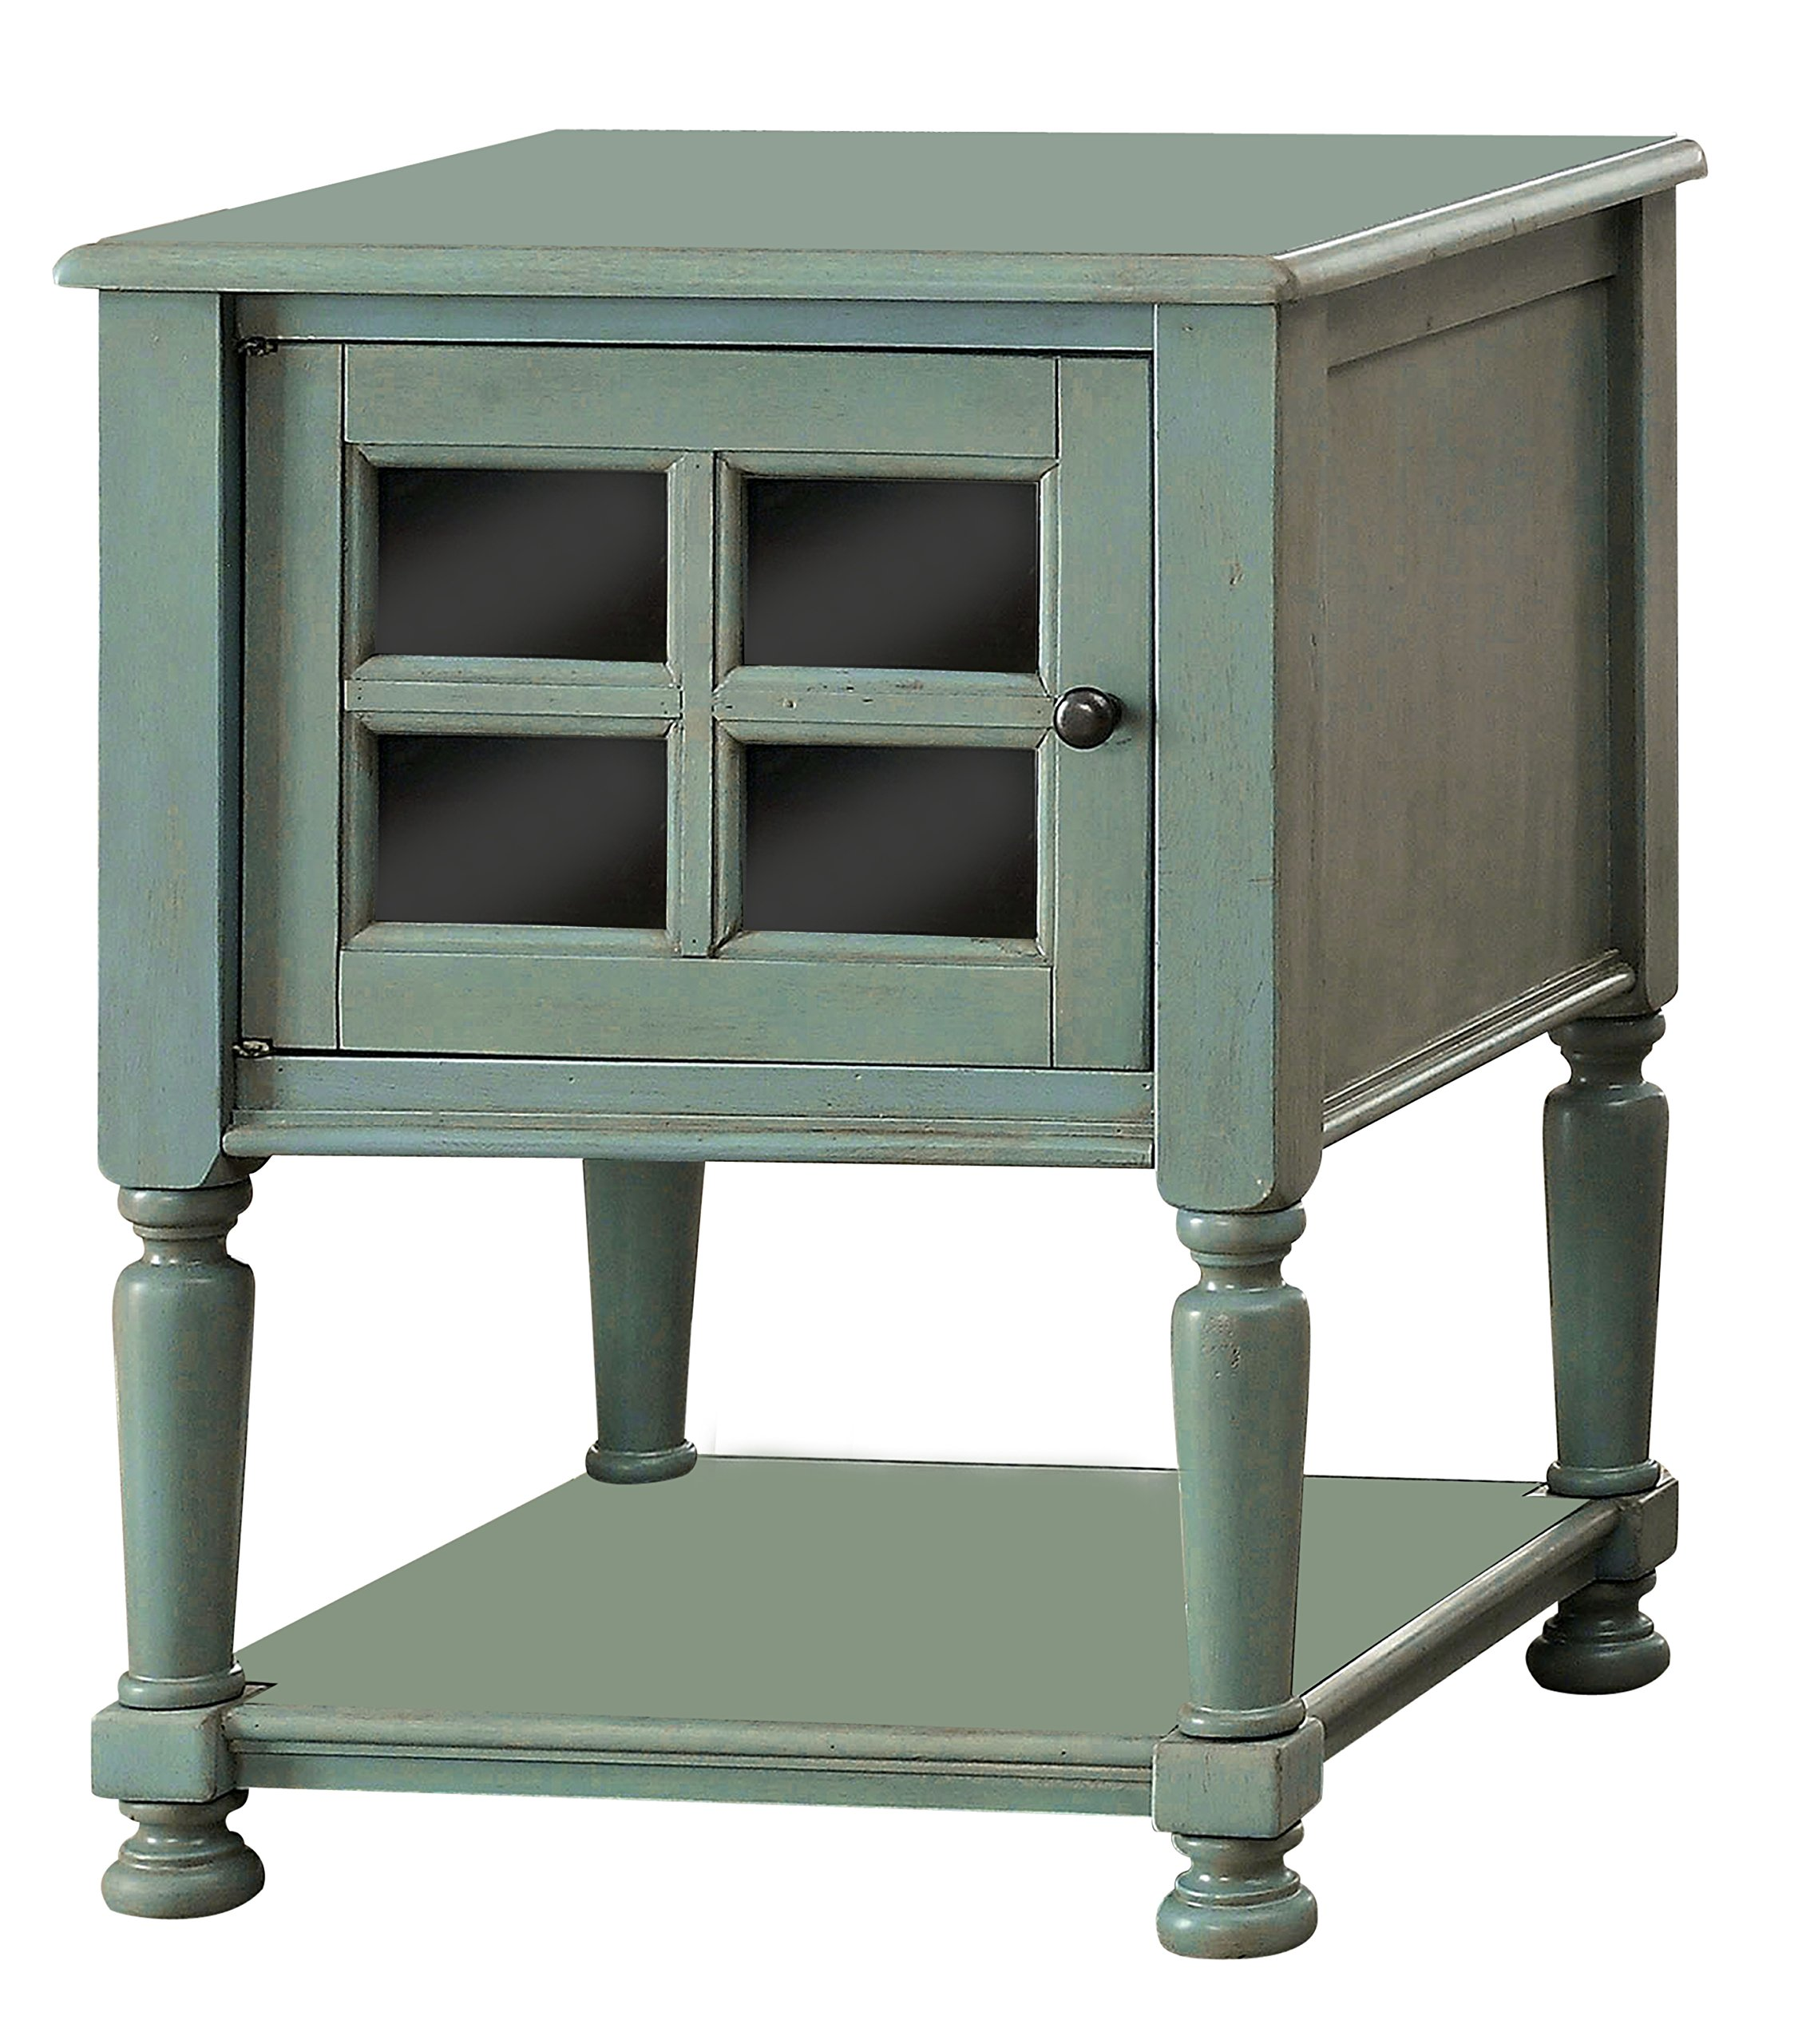 ComfortScape Mella Window Cabinet Storage Side Table in Antique Teal